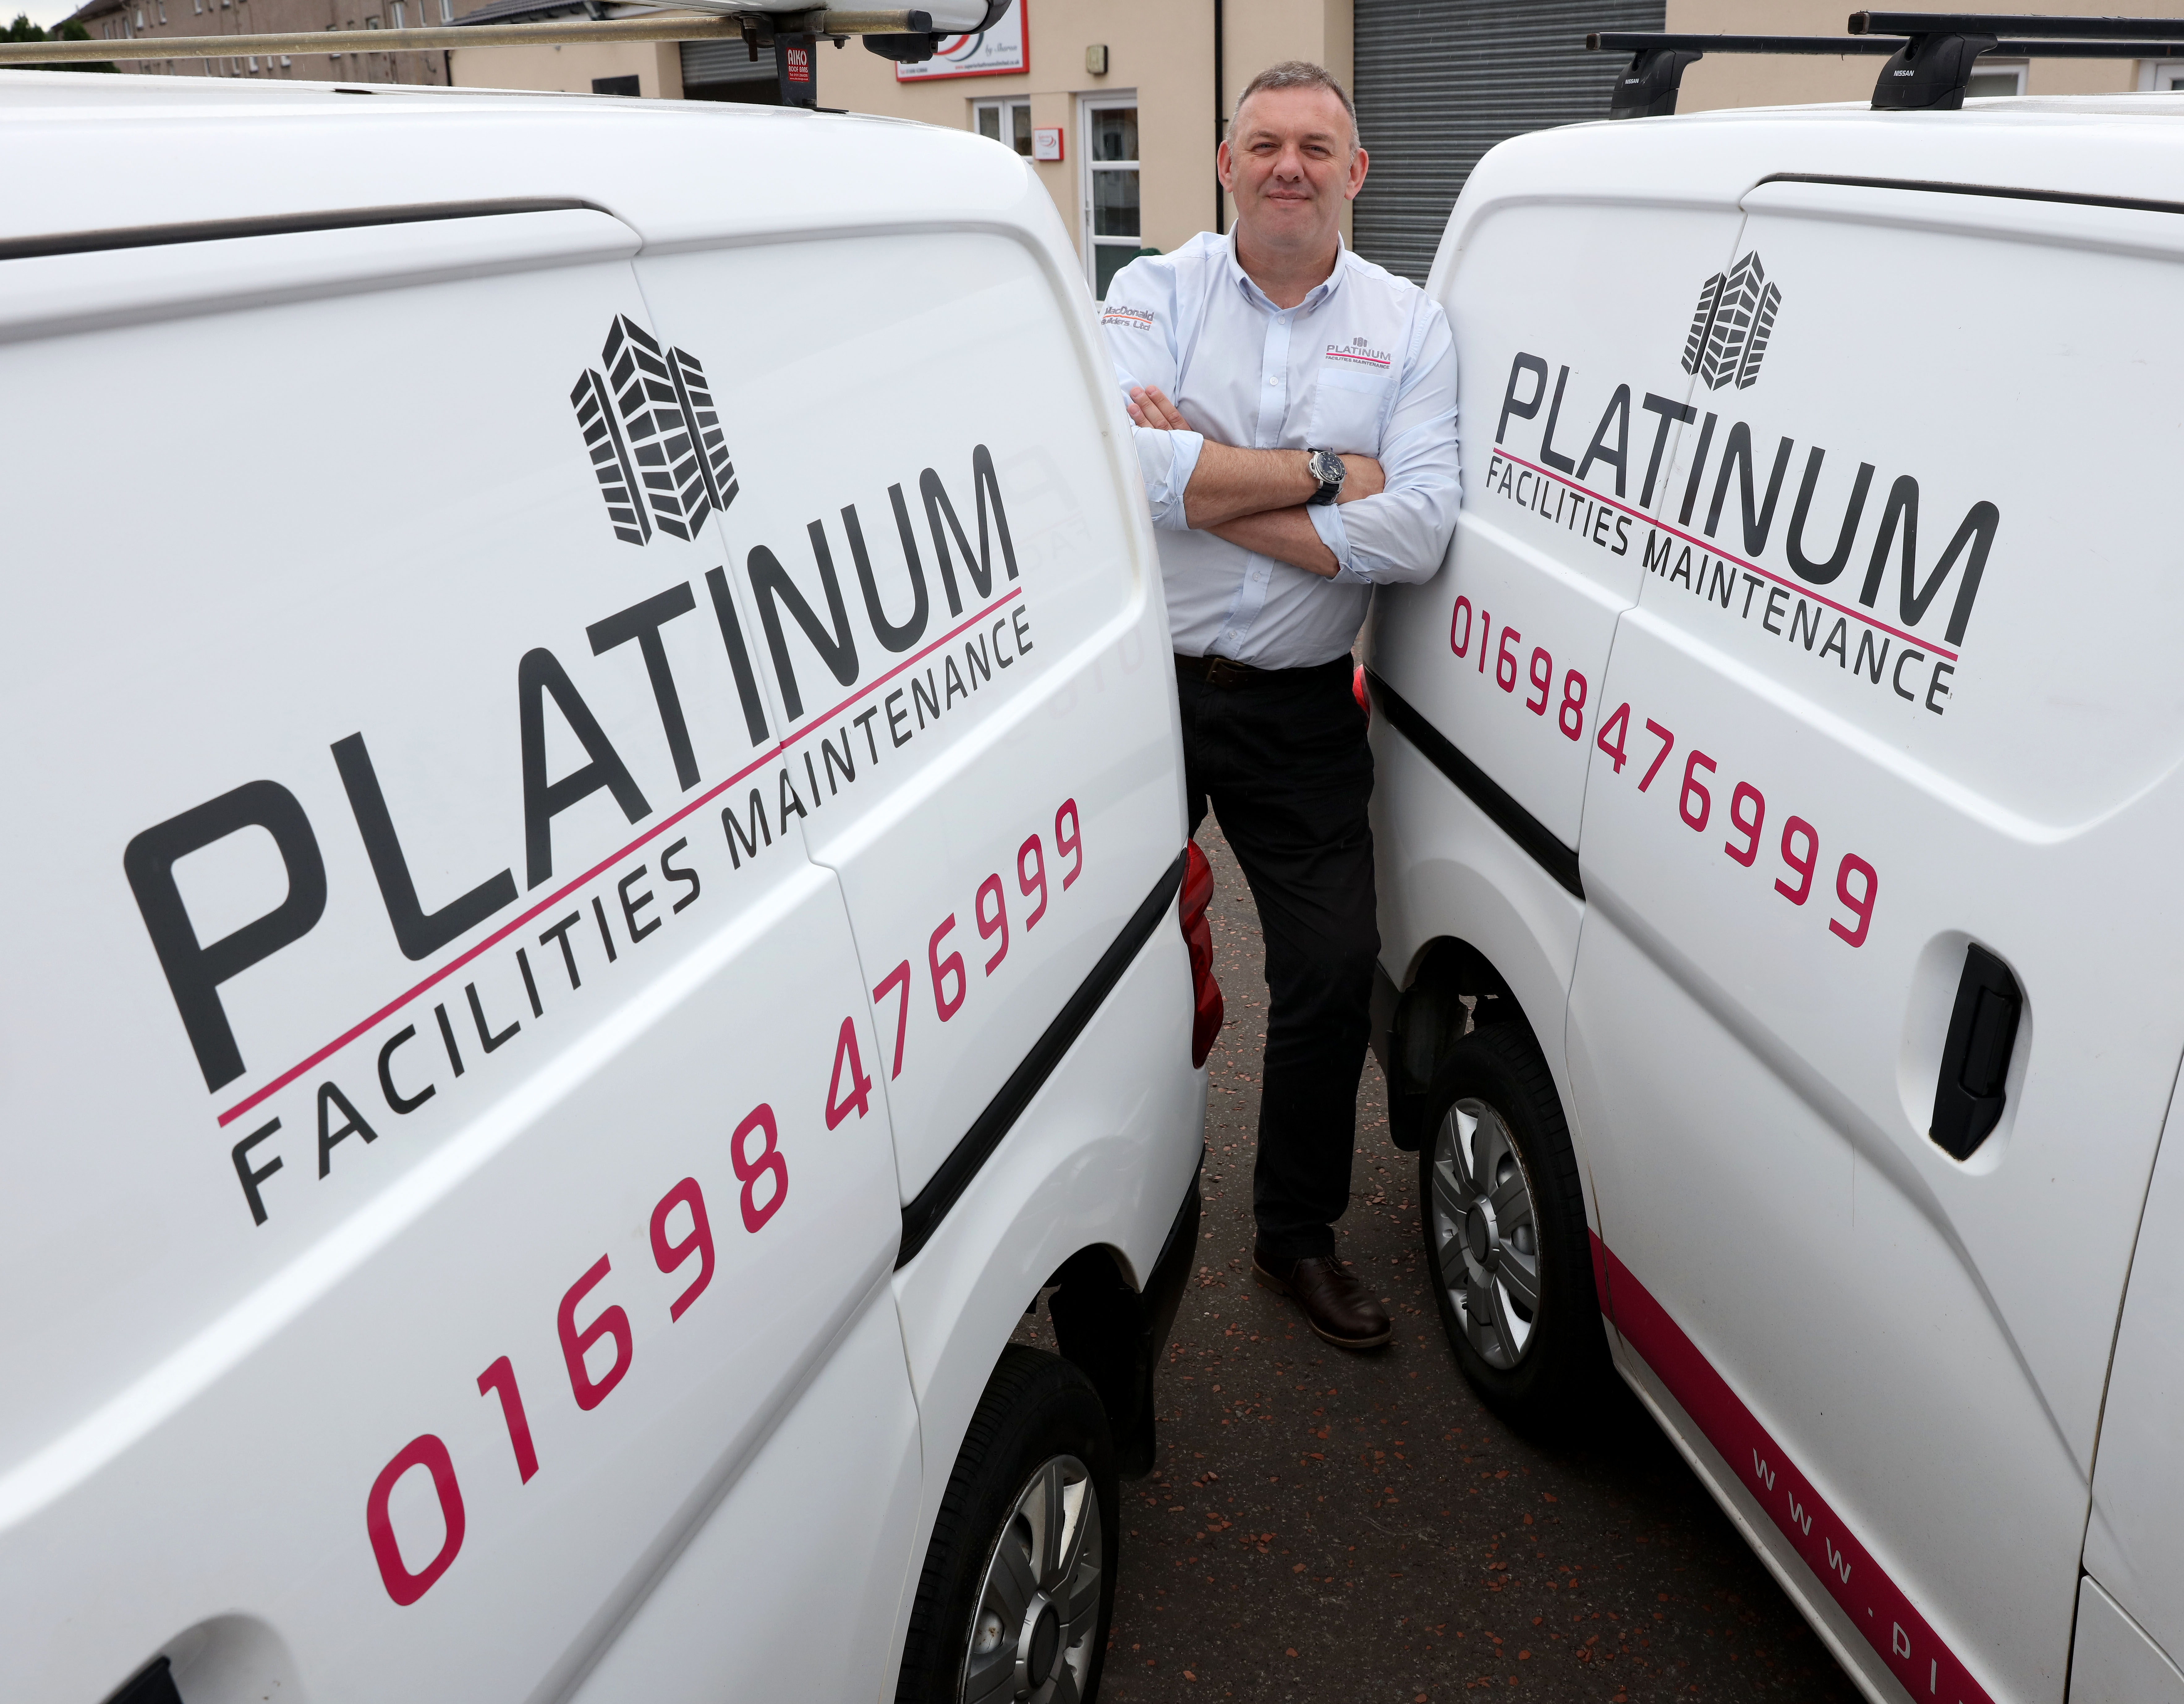 Facilities maintenance expert warns of serious health risks to the Scottish public from lax enforcement and lack of awareness of hygiene regulations